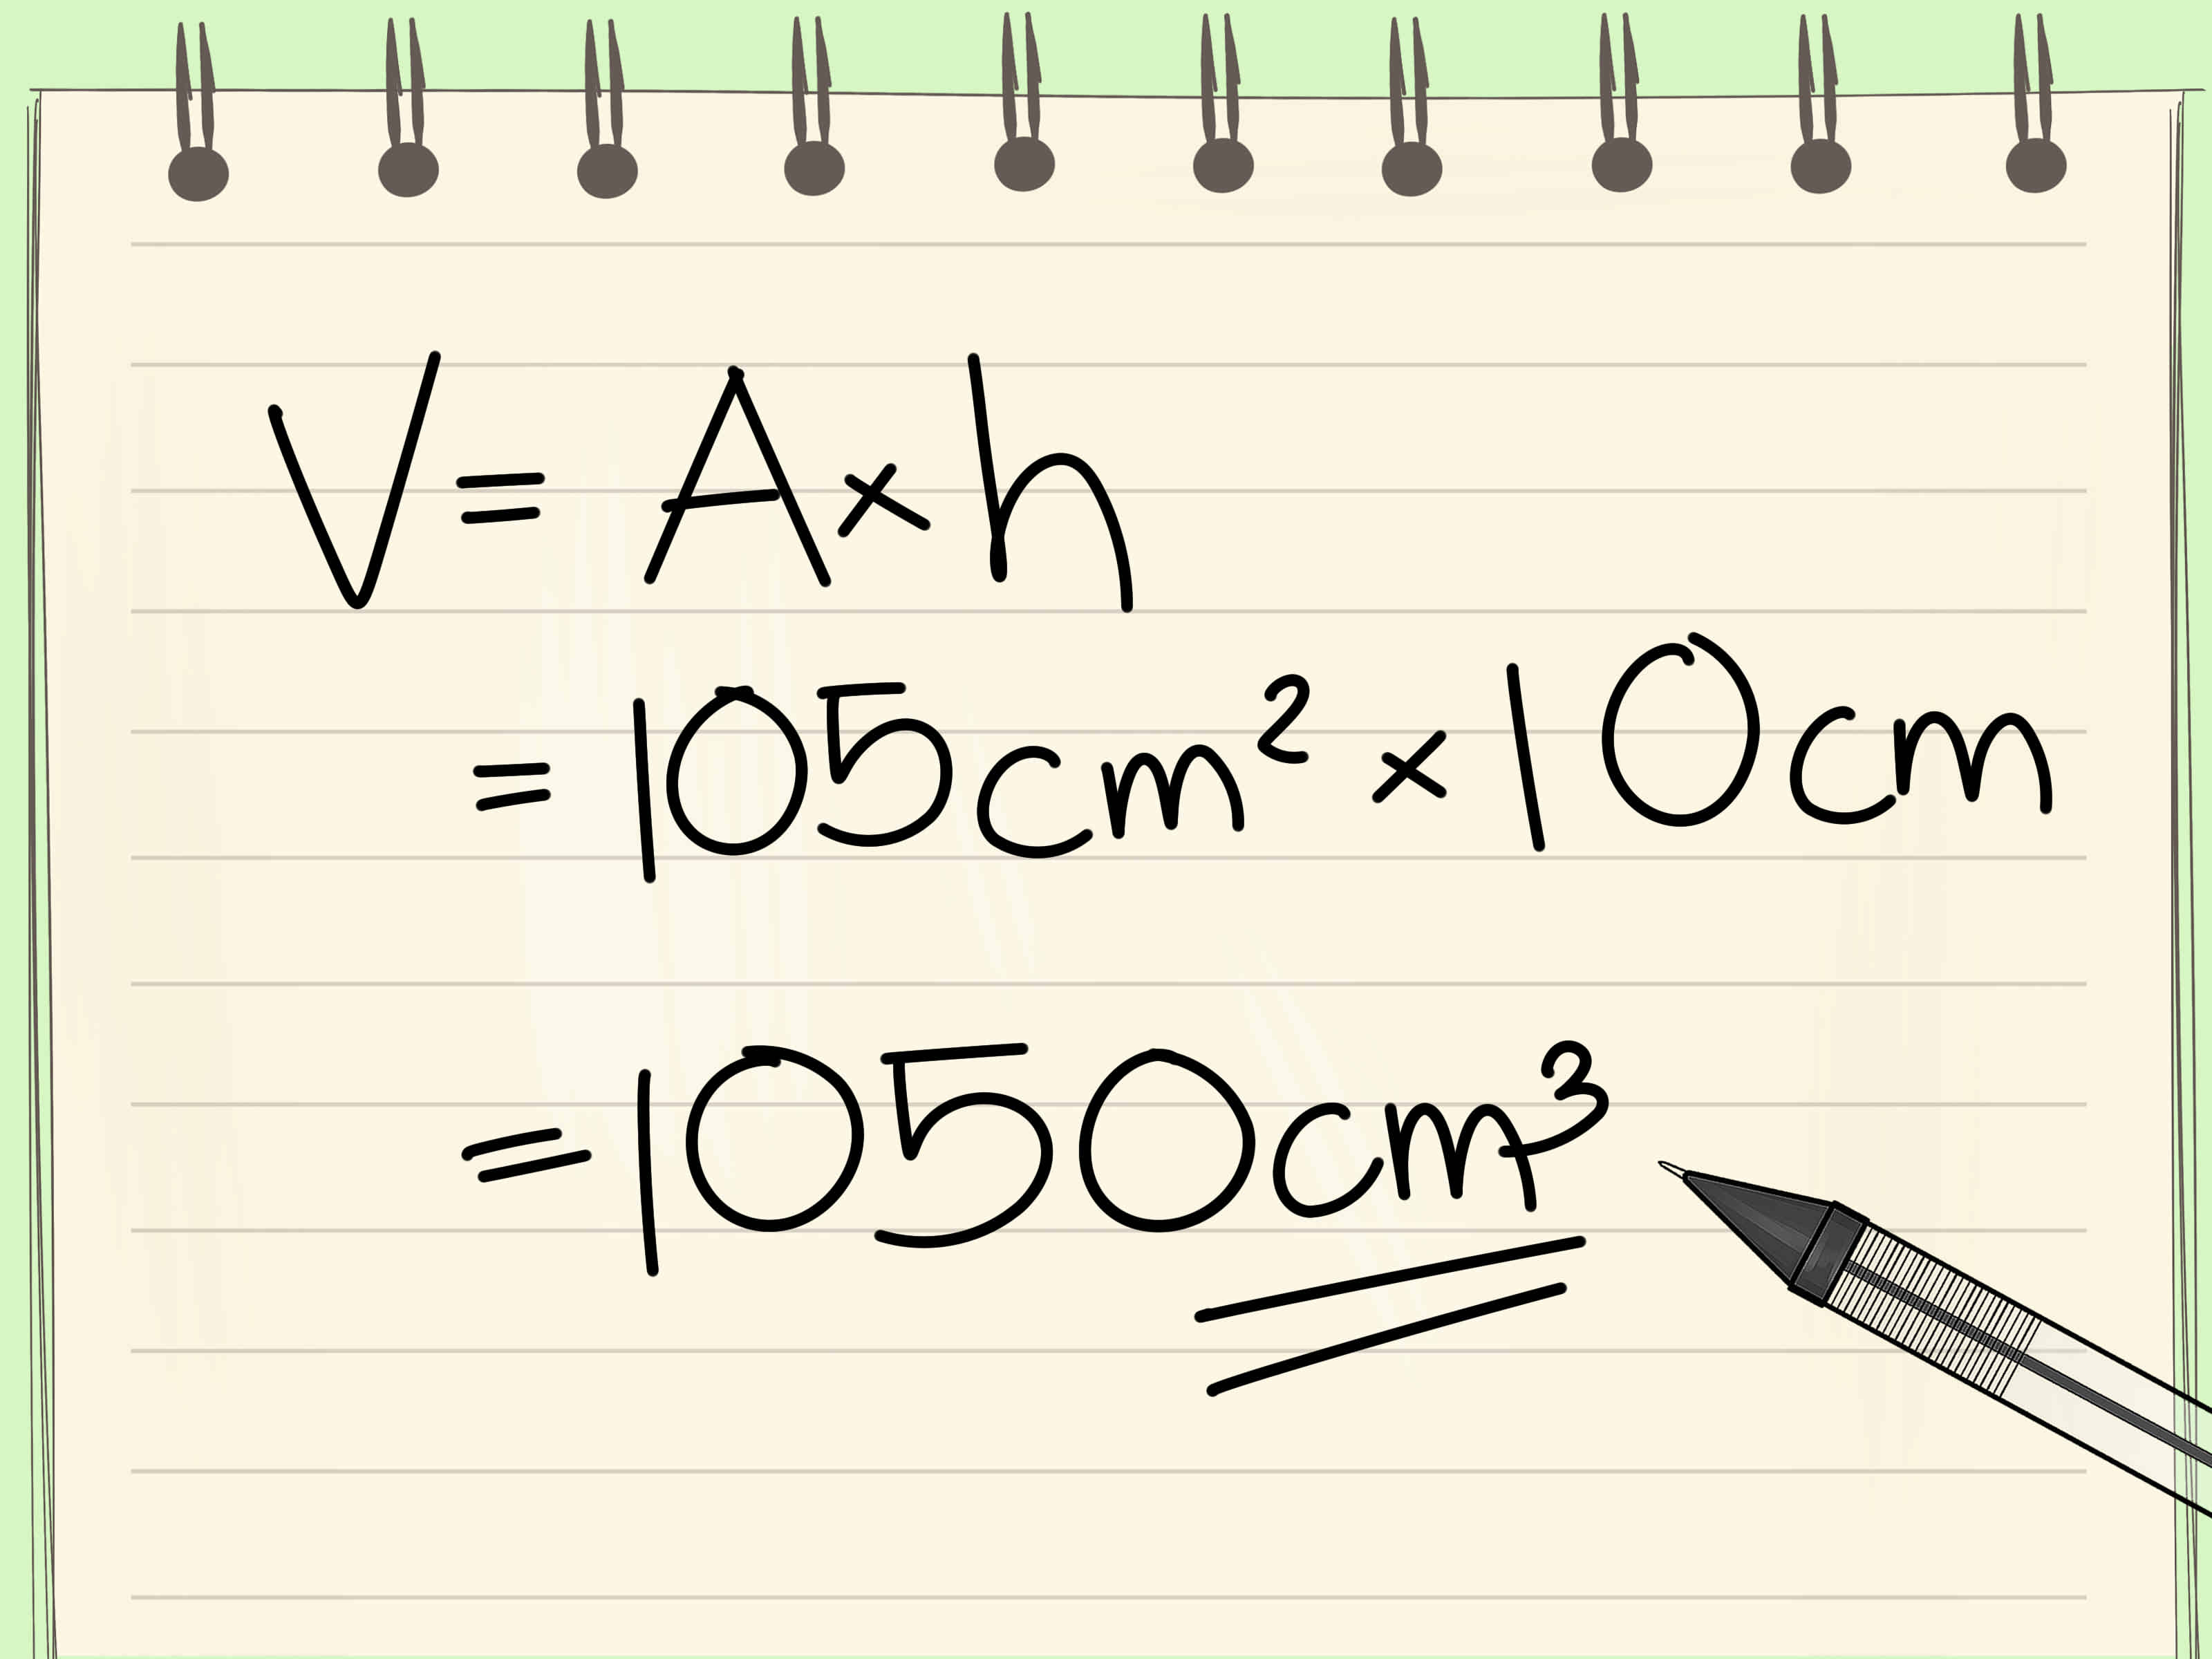 5 Easy Ways To Calculate The Volume Of A Prism